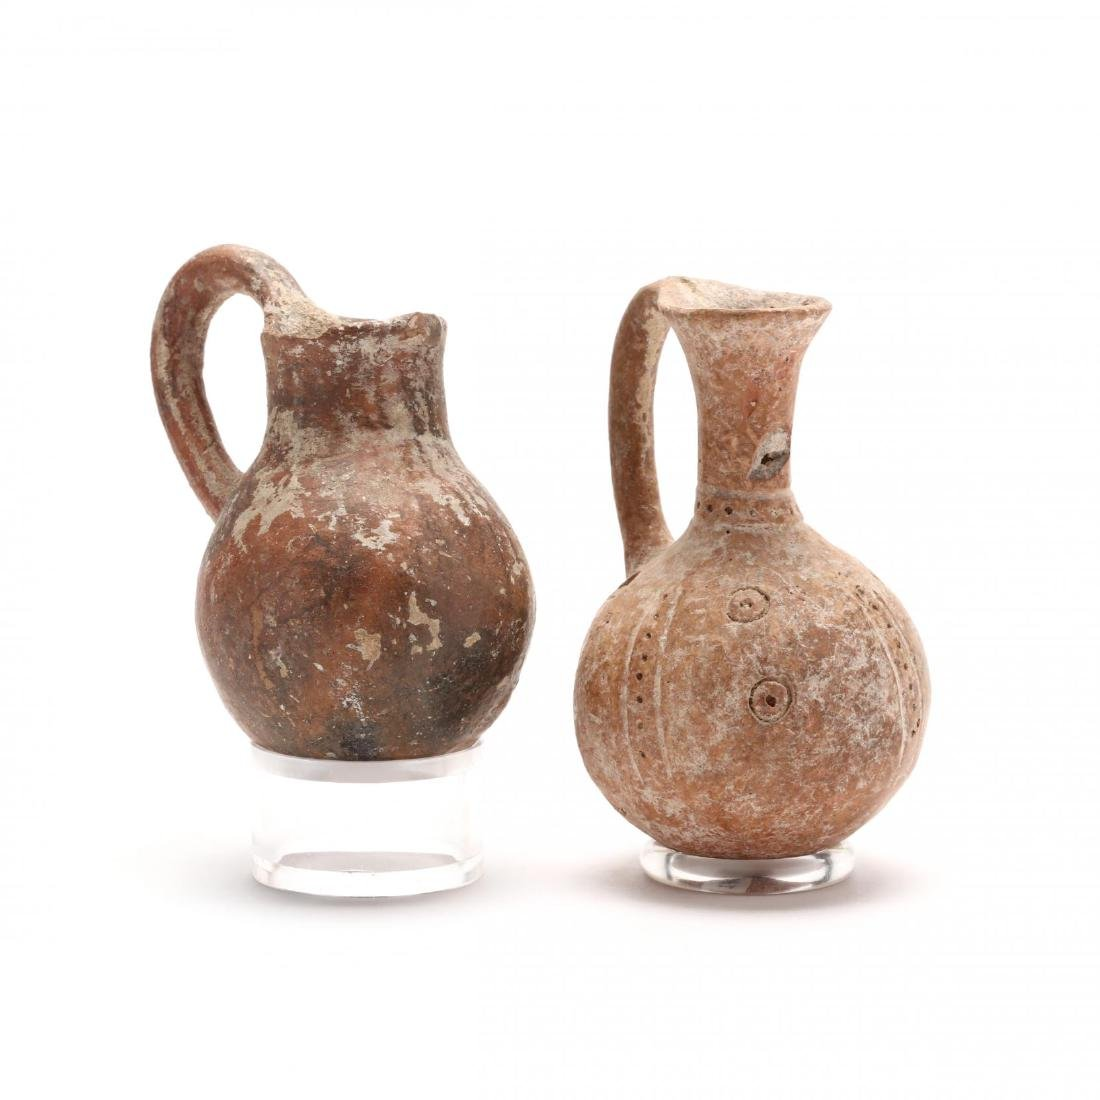 Two Cypriot Middle Bronze Age Red Ware Juglets